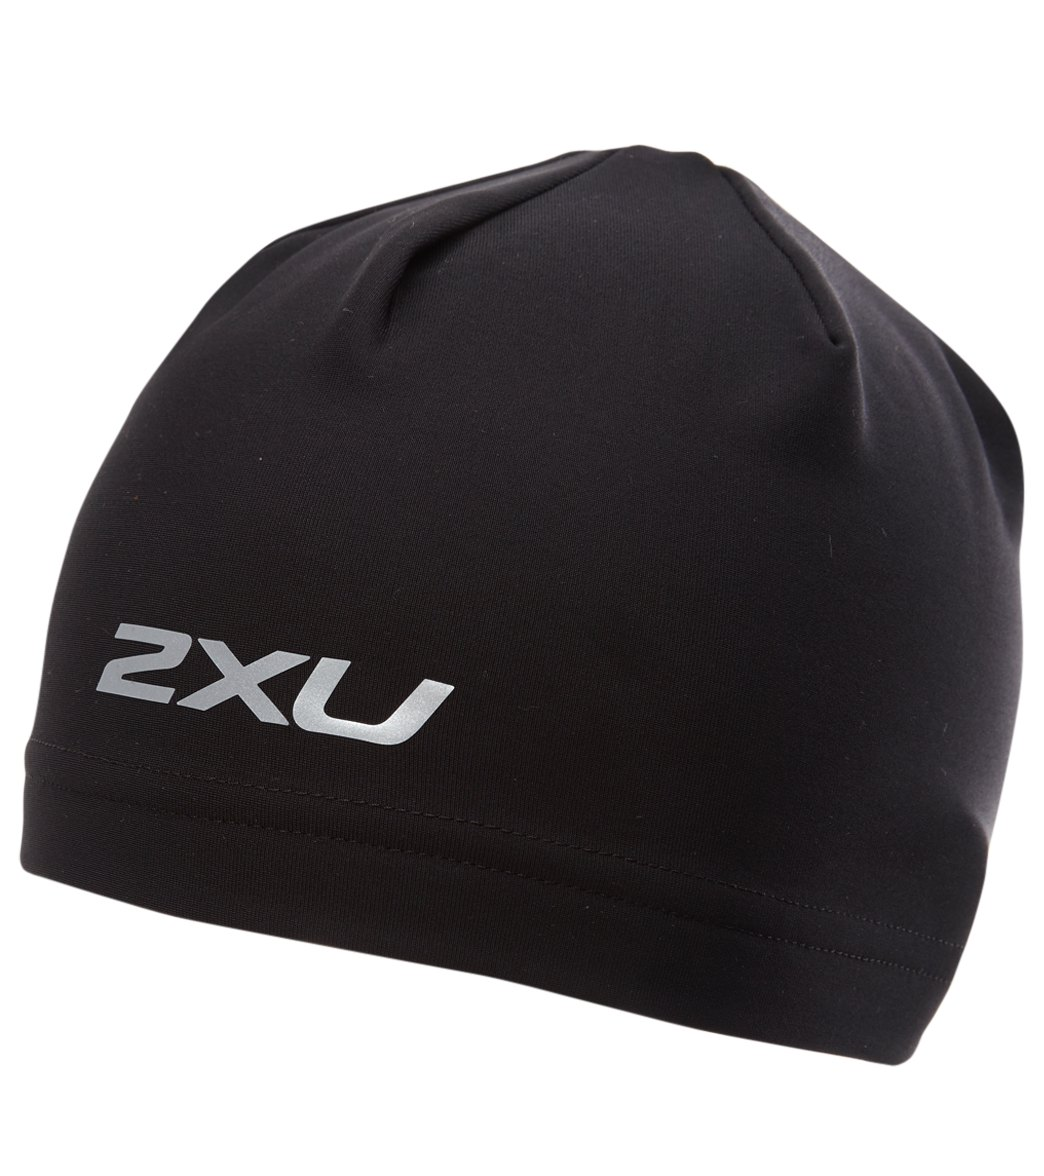 4264e4f6c85 2XU Cycle Thermal Beanie at SwimOutlet.com